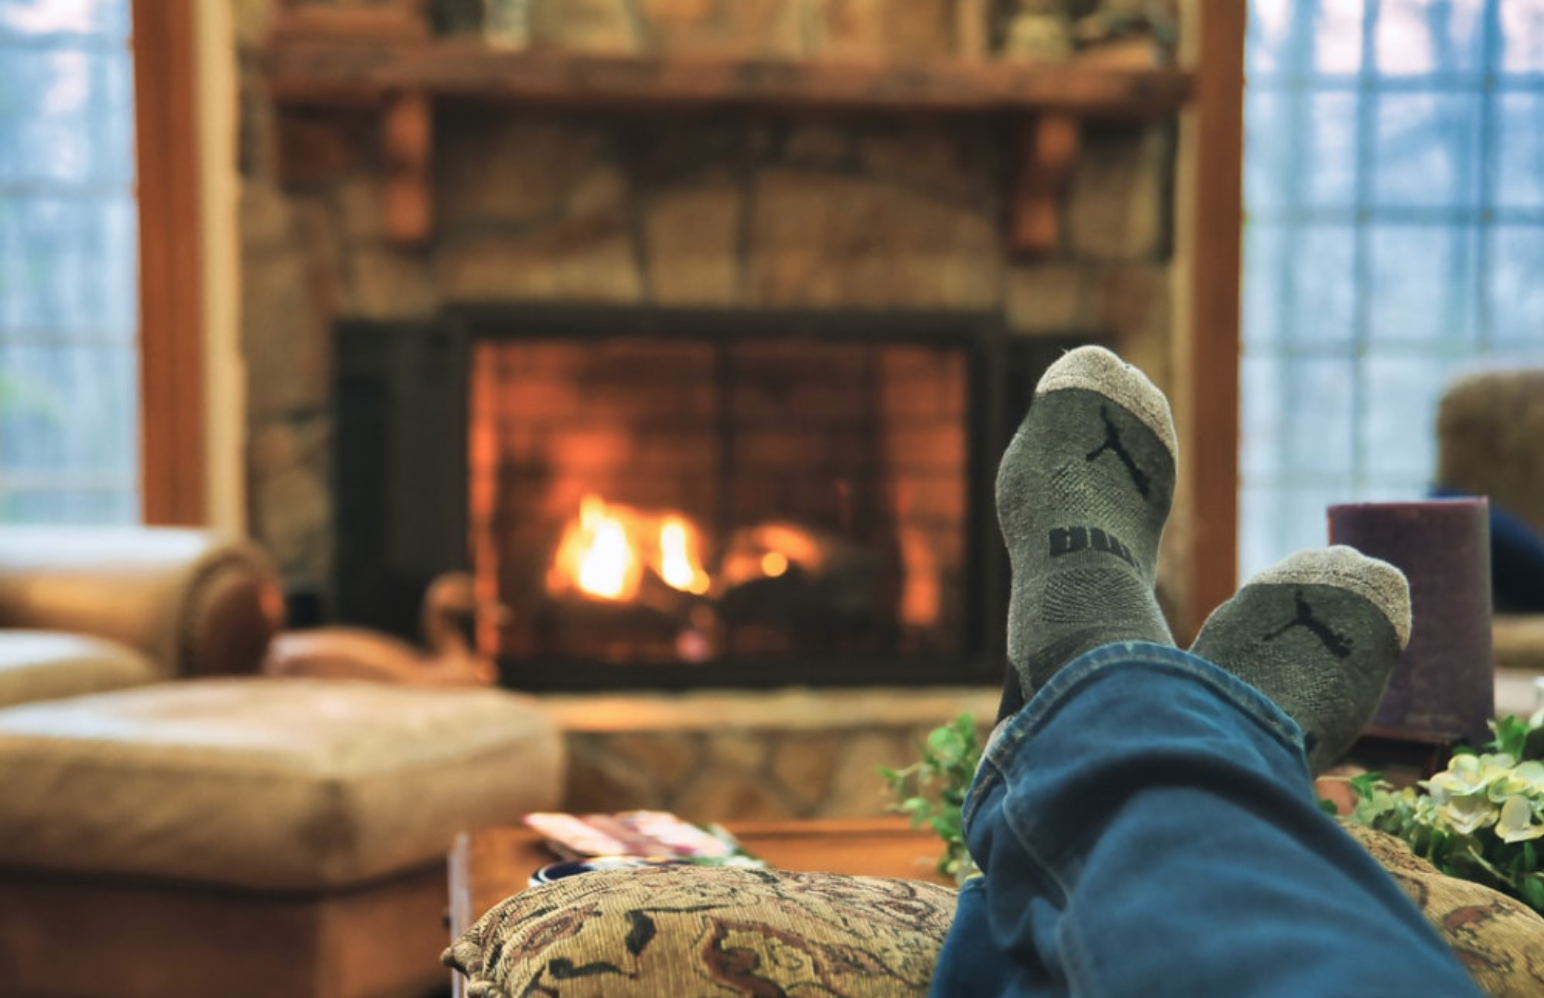 Should the Fireplace Flue Be Open or Closed? - Fireplace view